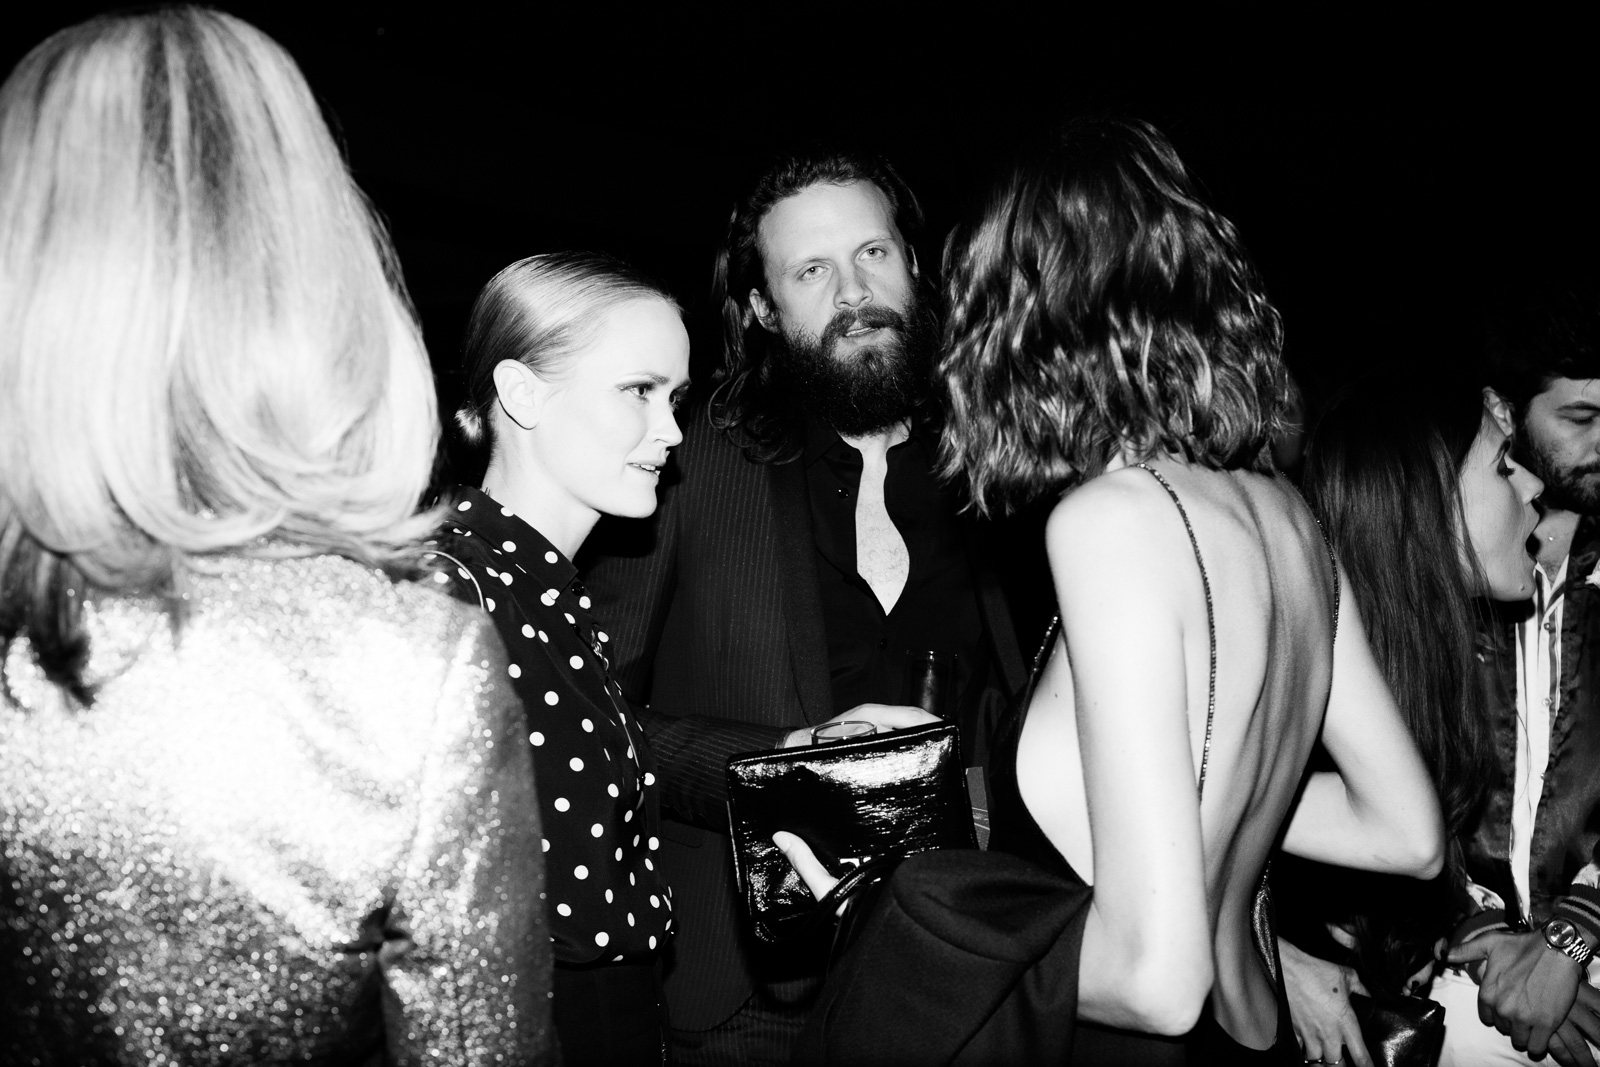 Father John Misty at Saint Laurent FW16 (Hedi Slimane) at the Palladium on February 10, 2016 in Los Angeles, California.